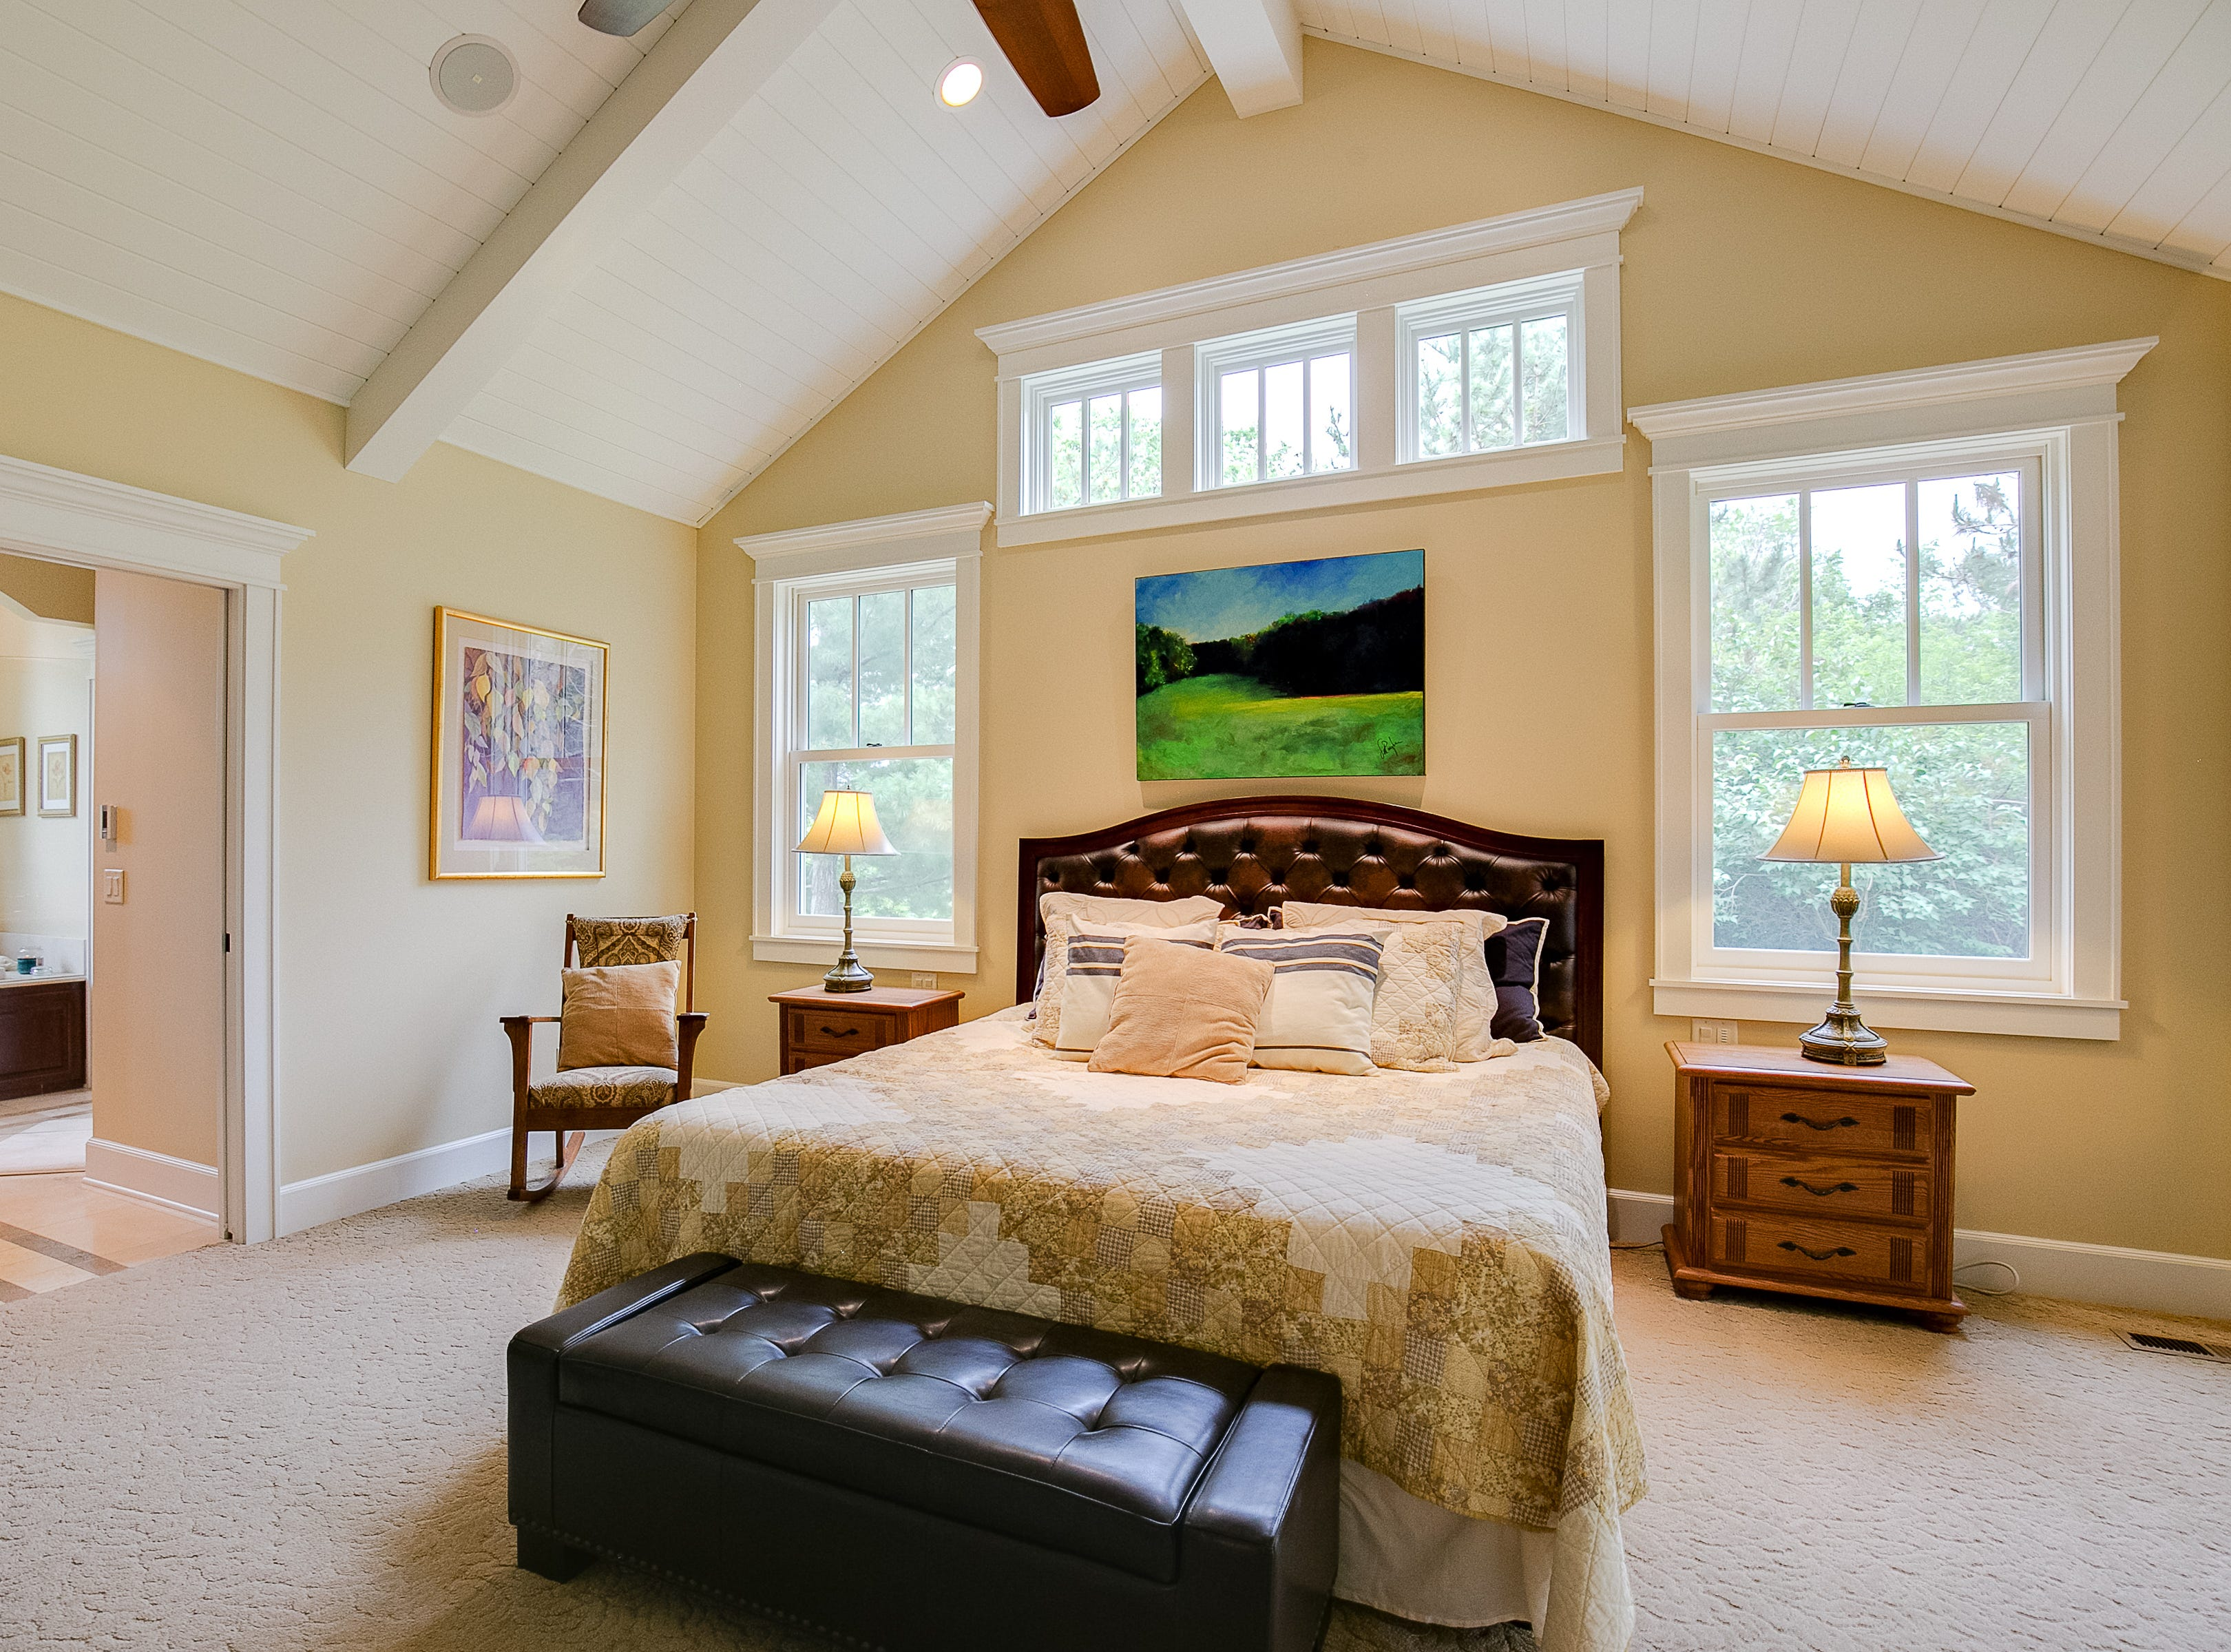 Another true highlight of the home is the bright master suite.